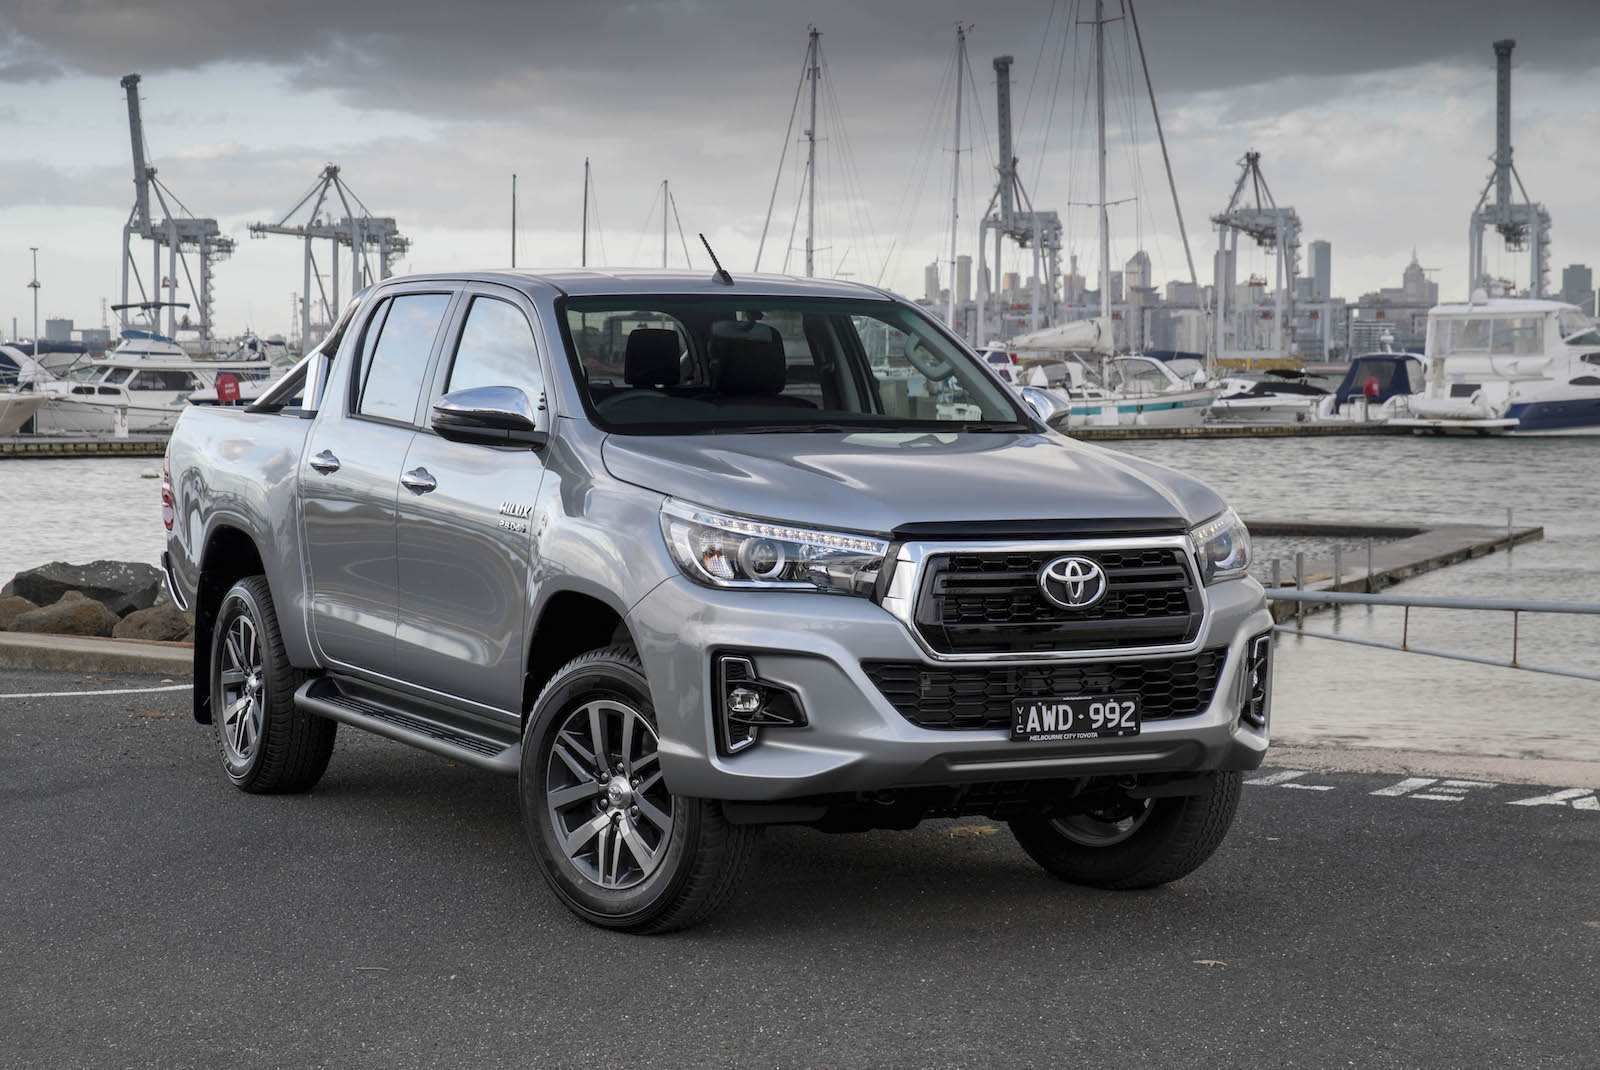 42 Great 2019 Toyota Diesel Hilux Performance for 2019 Toyota Diesel Hilux